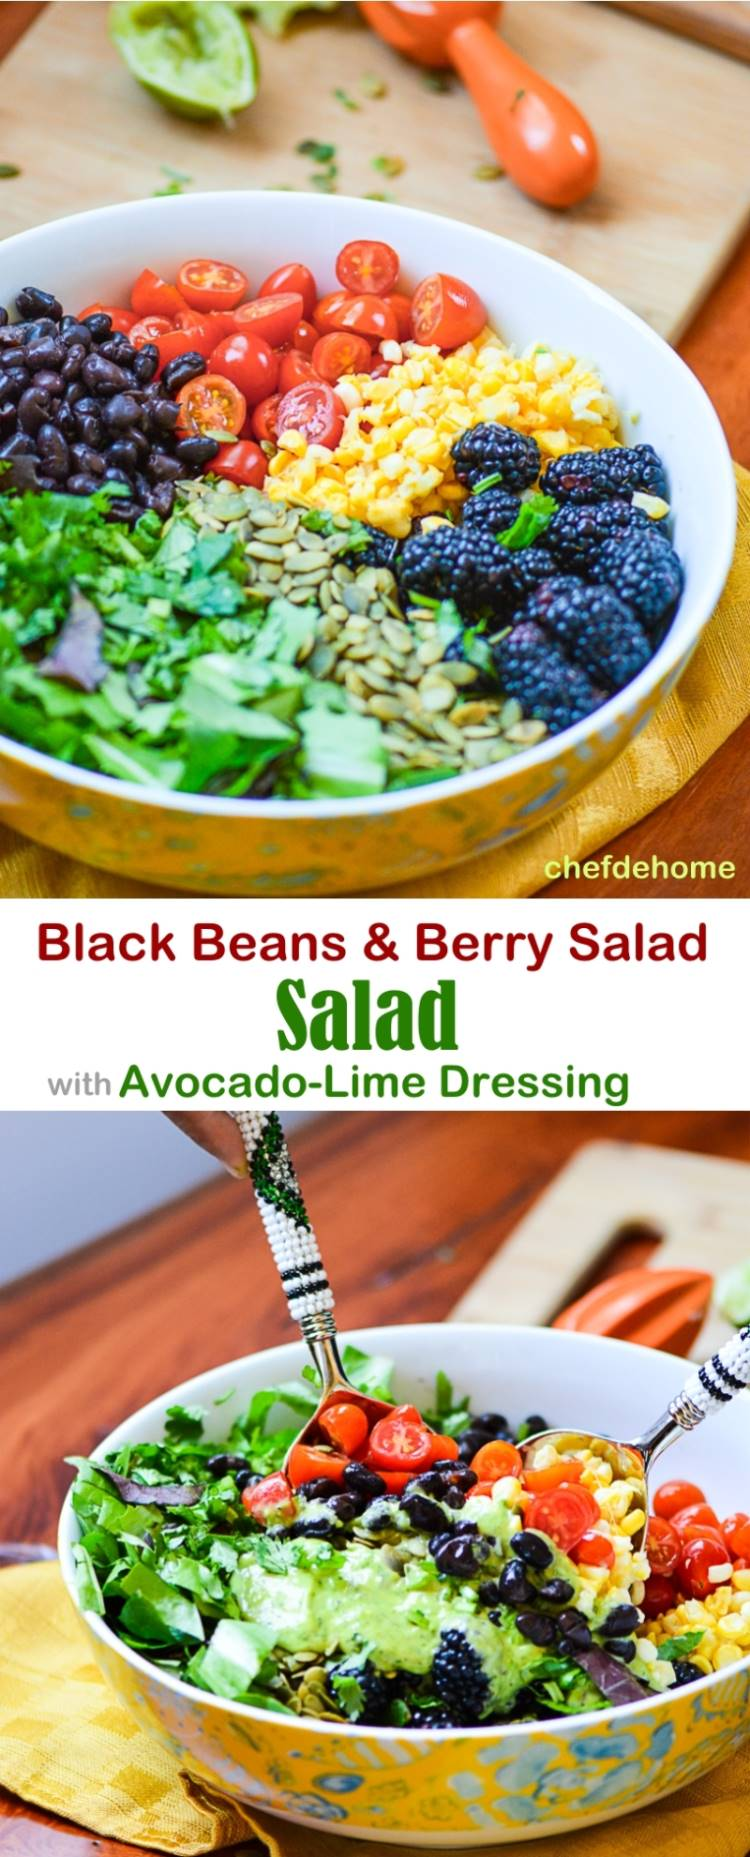 Mexican Black Beans and Berry Salad with Zesty Avocado Lime Dressing Vegan and Gluten free | chefdehome.com